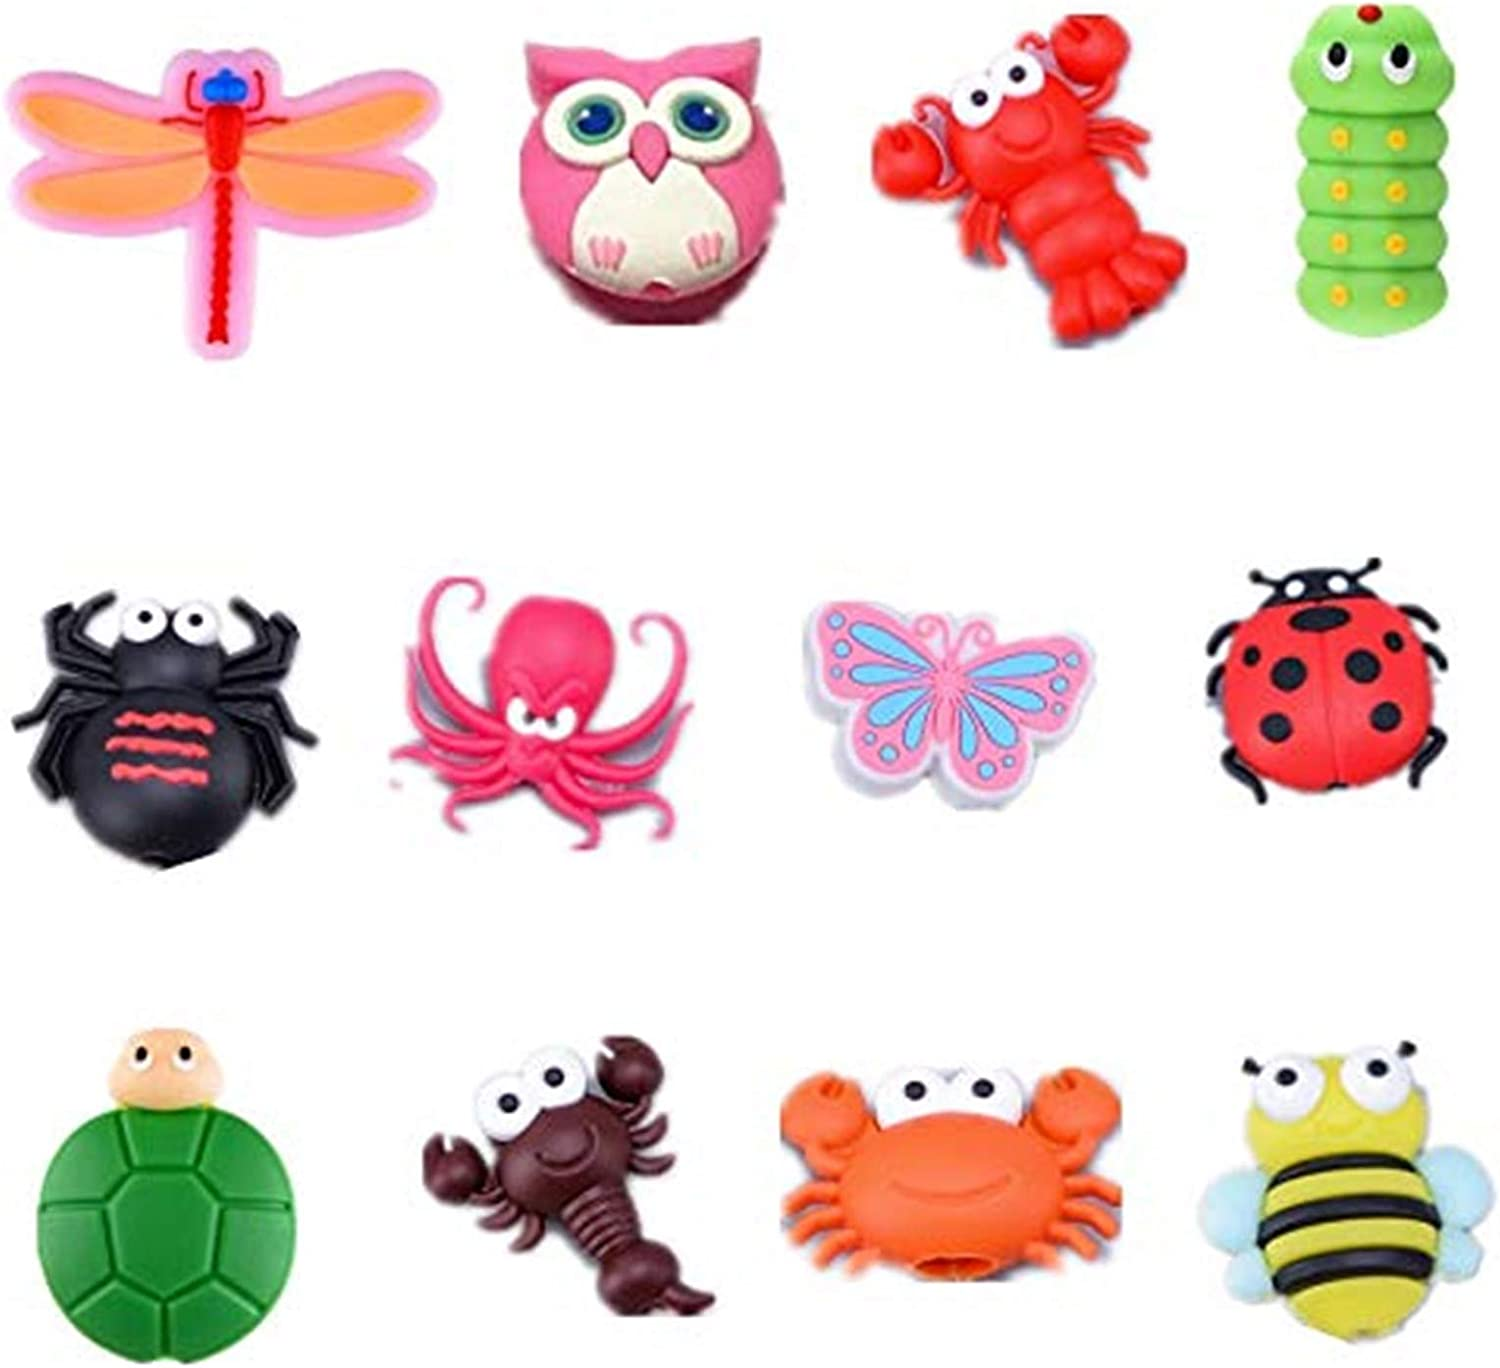 12 Pcs Charger Cable Protectors for iPhone//iPad//iwatch//Earphone Cute Cartoon Animal USB Charging Cable Saver Phone Accessory